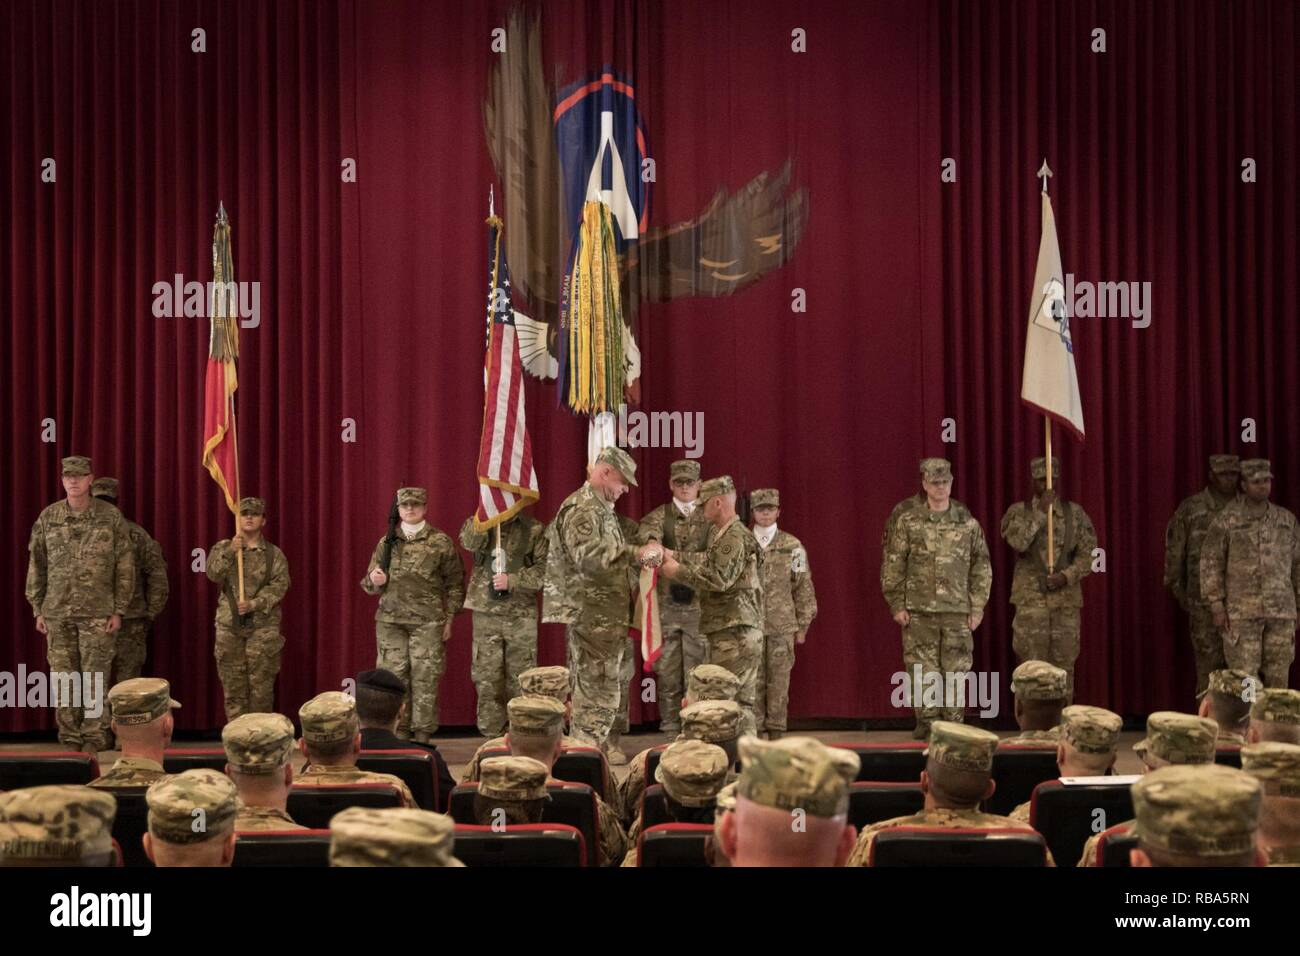 Brig. Gen. Robert Harter, the commanding general of the 316th Sustainment Command (Expeditionary), and Command Sgt. Maj. Johnny McPeek, the senior enlisted advisor of the 316th ESC, uncase their colors during their transfer of authority ceremony from the 451st ESC at Camp Arifjan, Kuwait, Dec. 23, 2016. - Stock Image